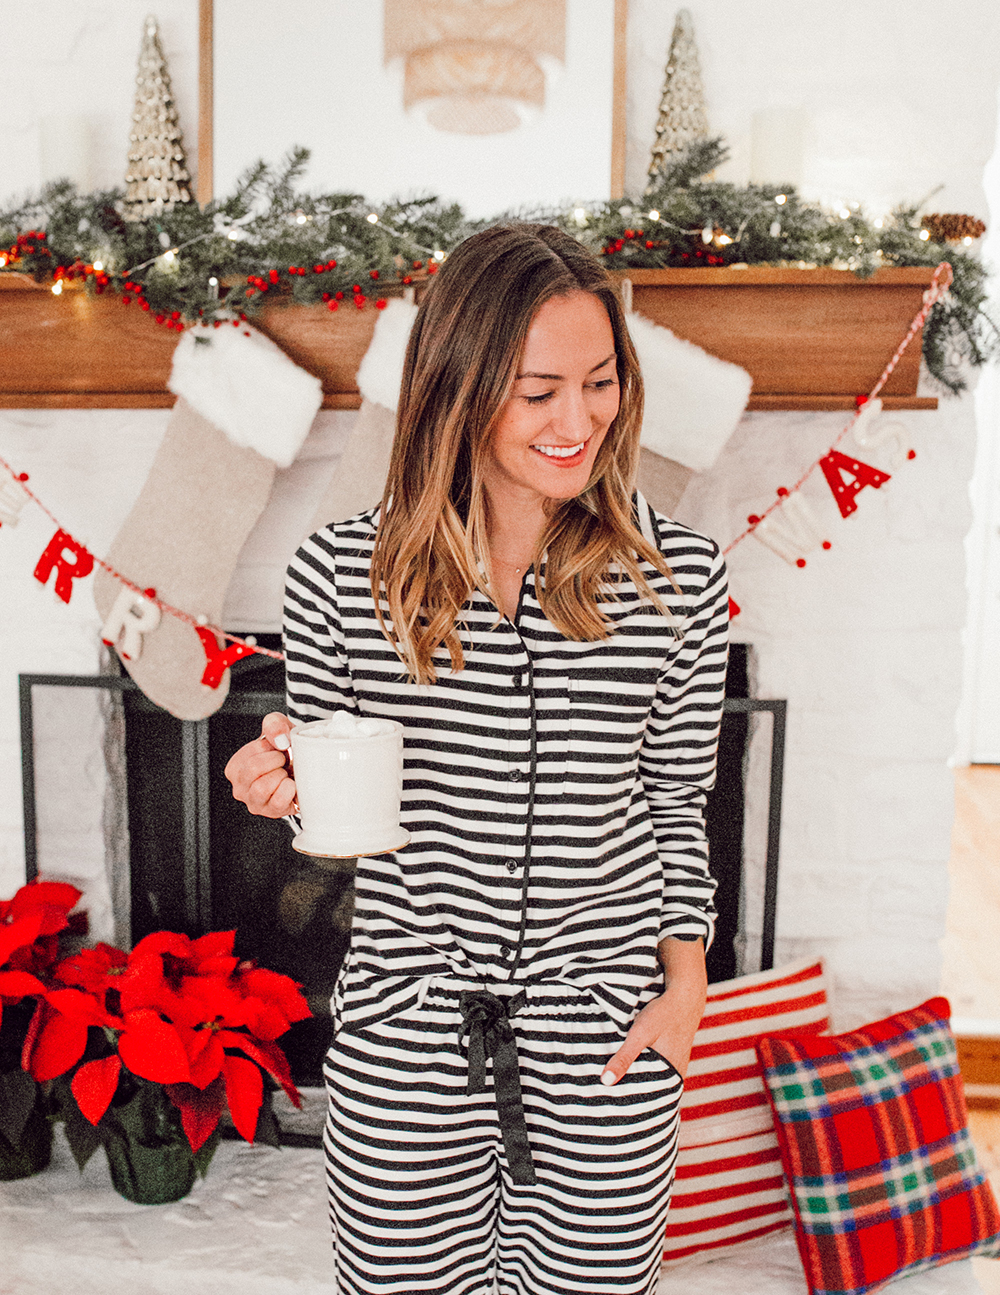 livvyland-blog-olivia-watson-ugg-slippers-cozy-morning-home-kate-spade-striped-pajamas-6